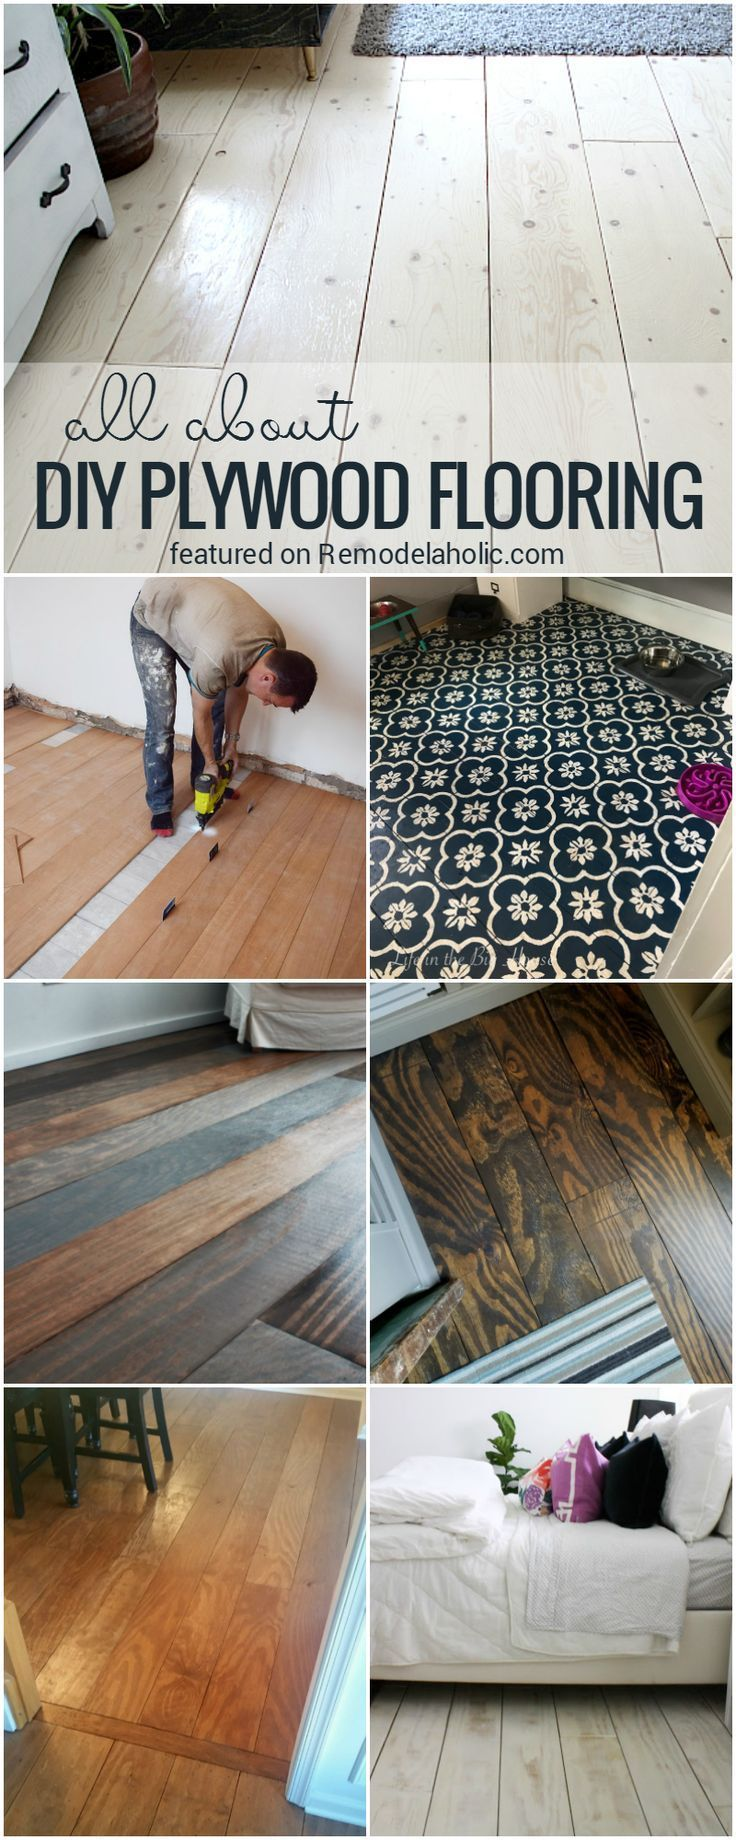 All About DIY Planked Plywood Flooring: tips and FAQs about installation,  durability, and cleaning, plus pros and cons about installing DIY plywood  plank ...